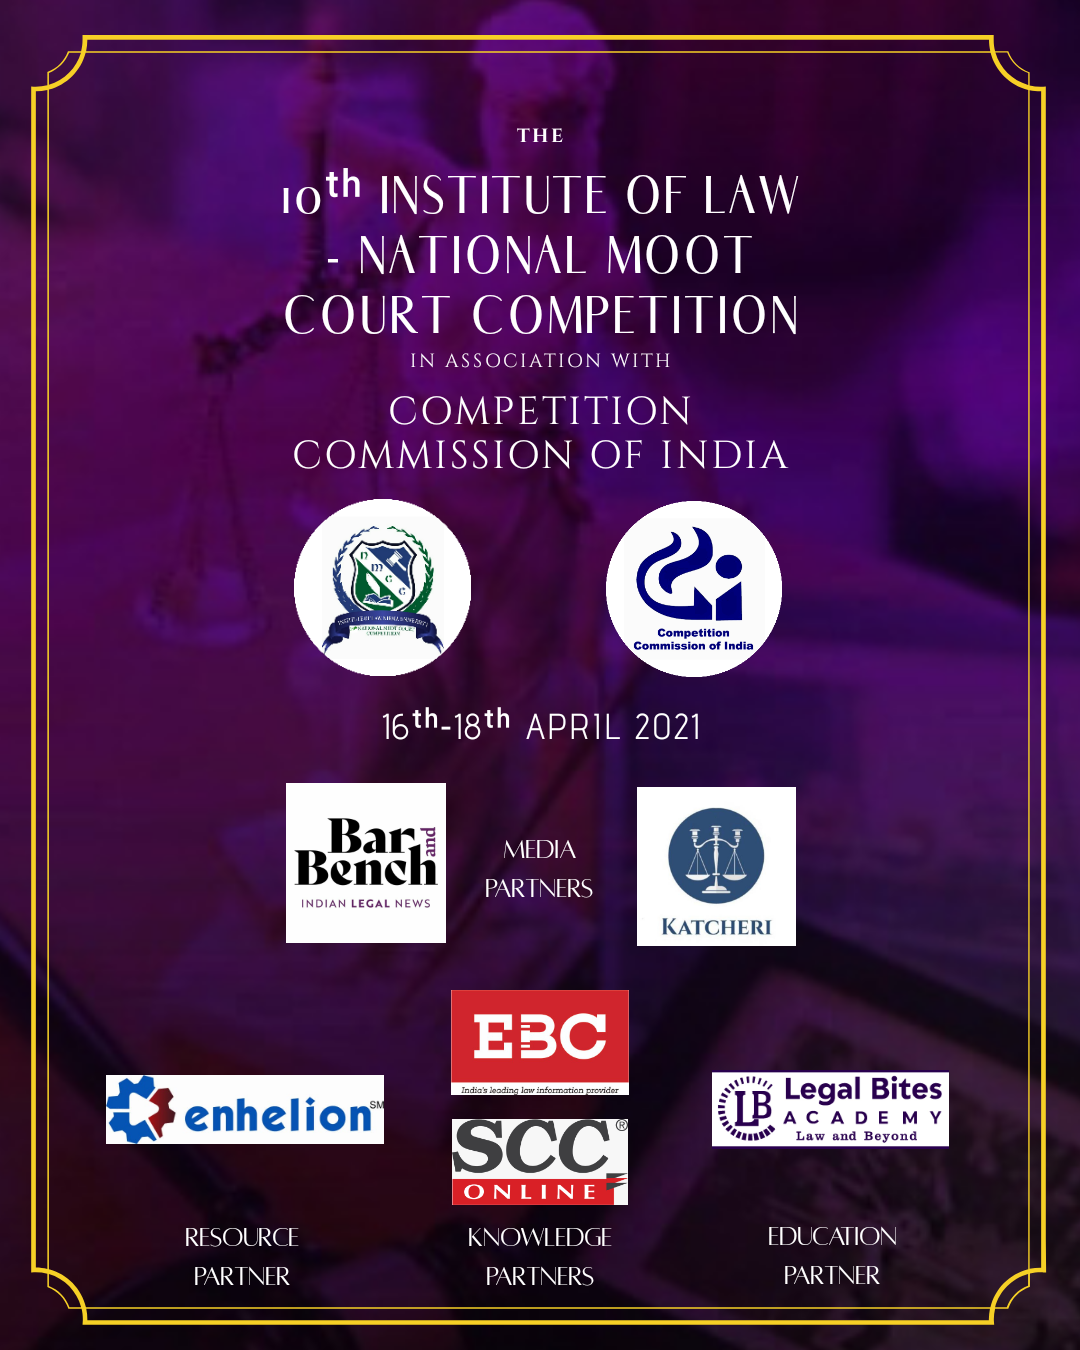 10th Institute of Law, National Moot Court Competition 2021